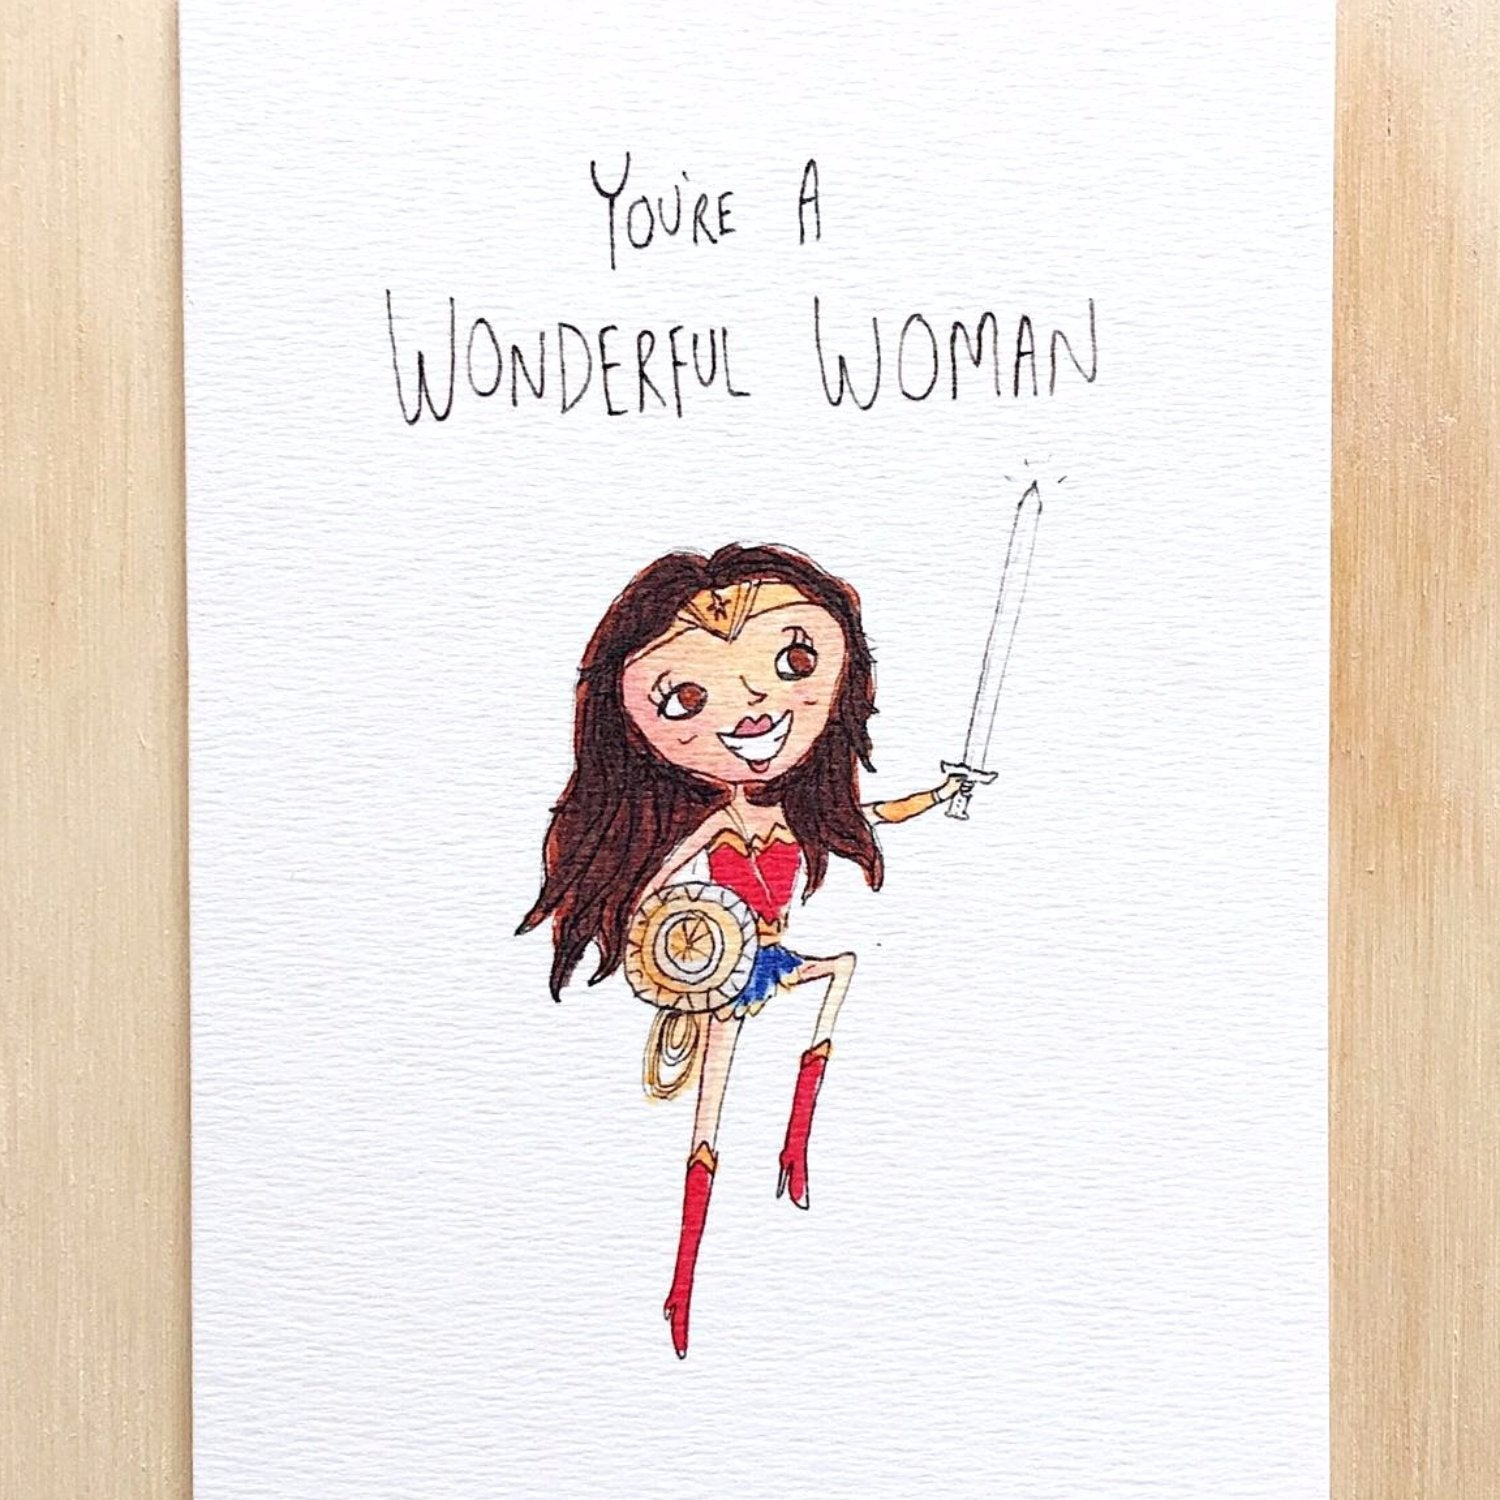 You're A Wonderful Woman - Well Drawn